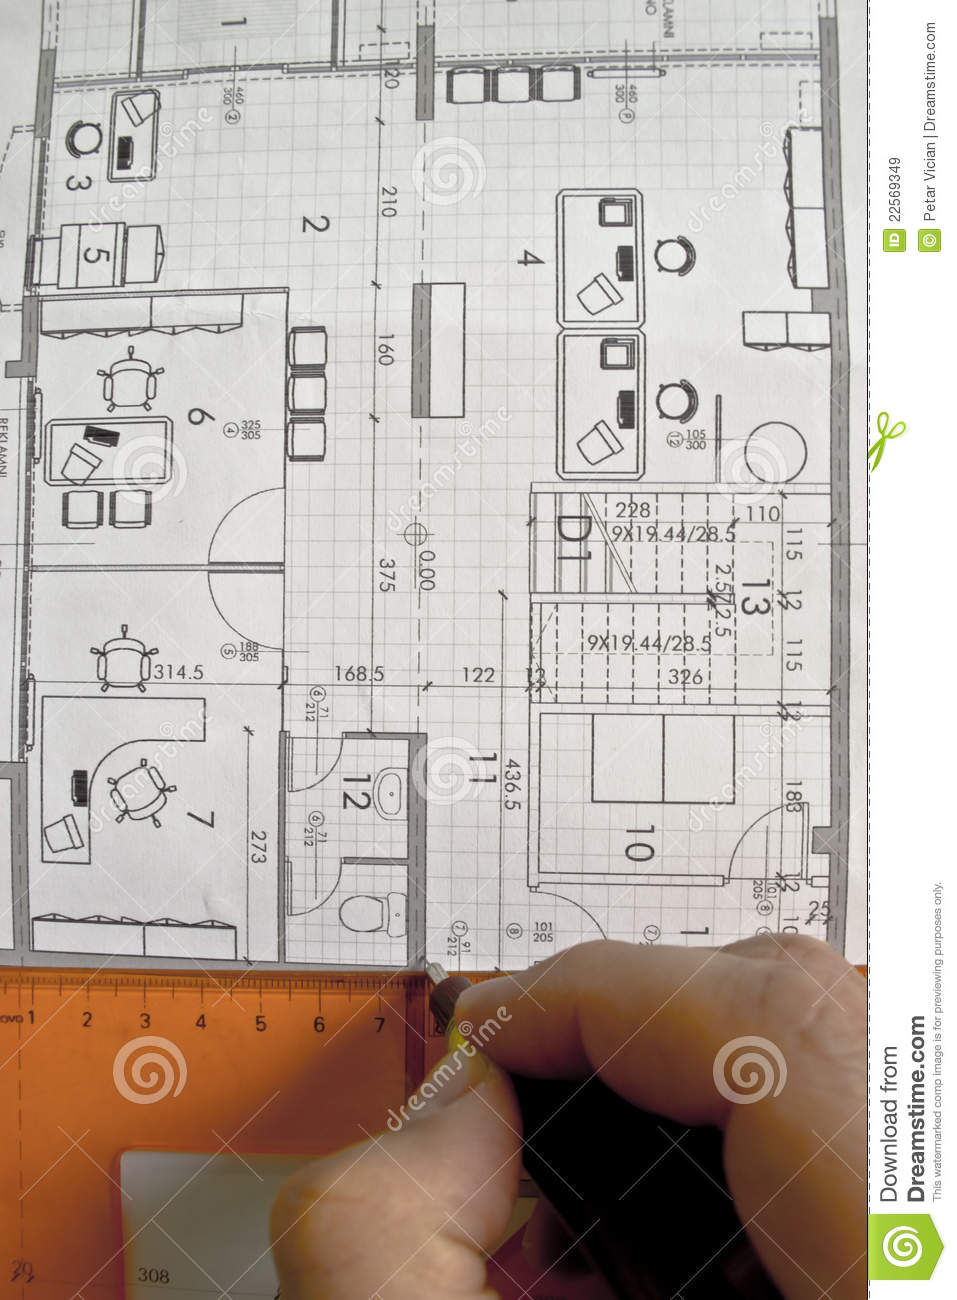 Architect Working On Architectural Plan Stock Image Image Of